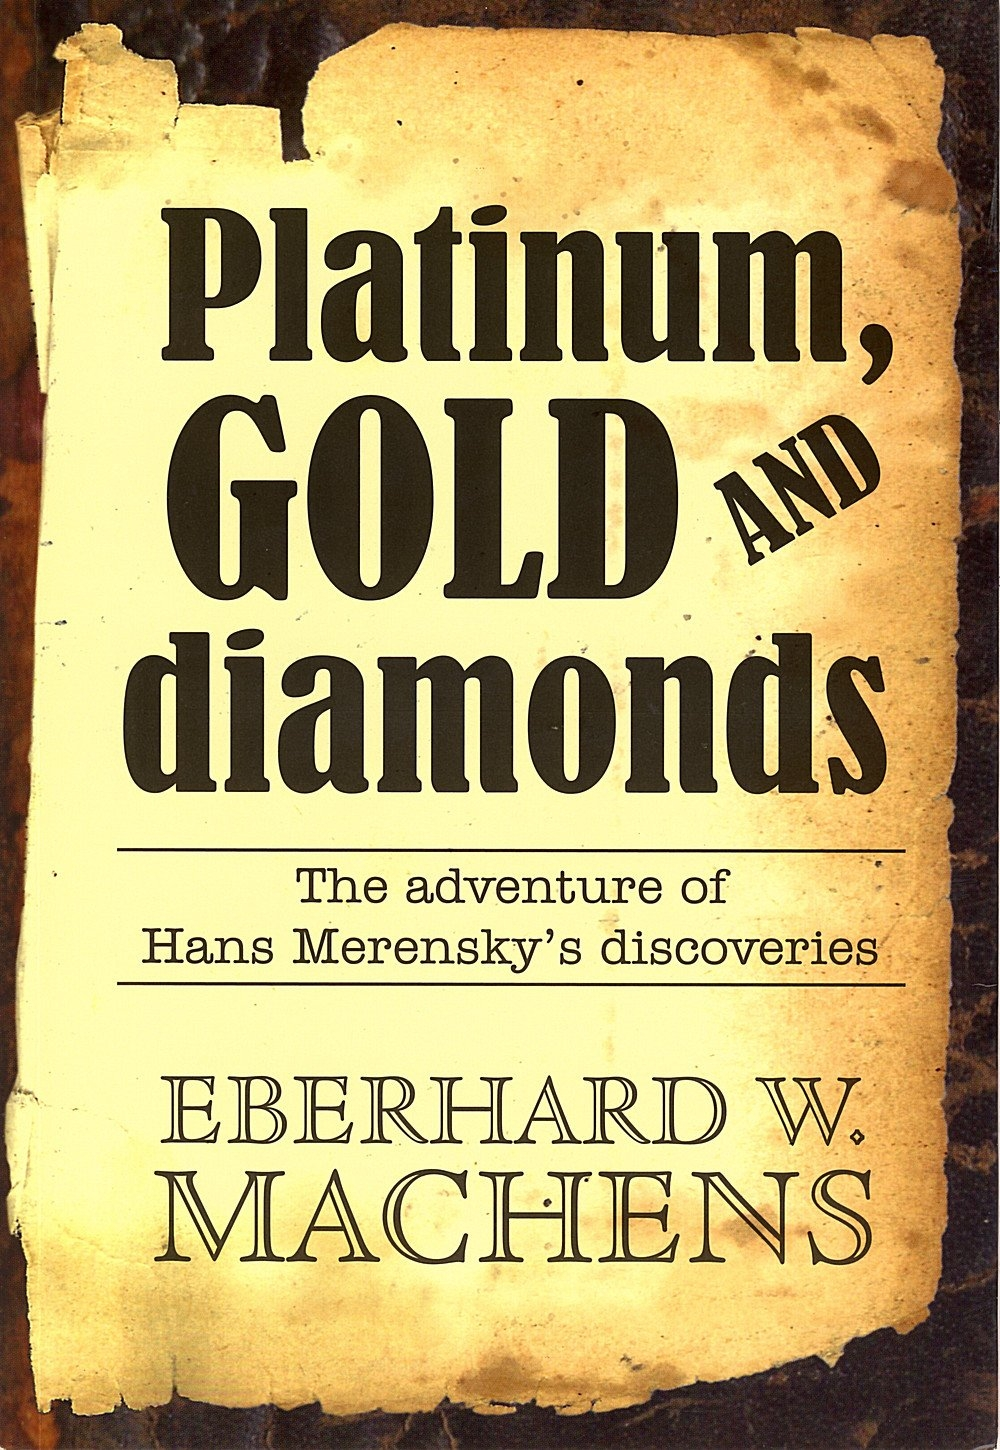 Platinum, Gold and Diamonds. The story of Hans Merensky's discovery